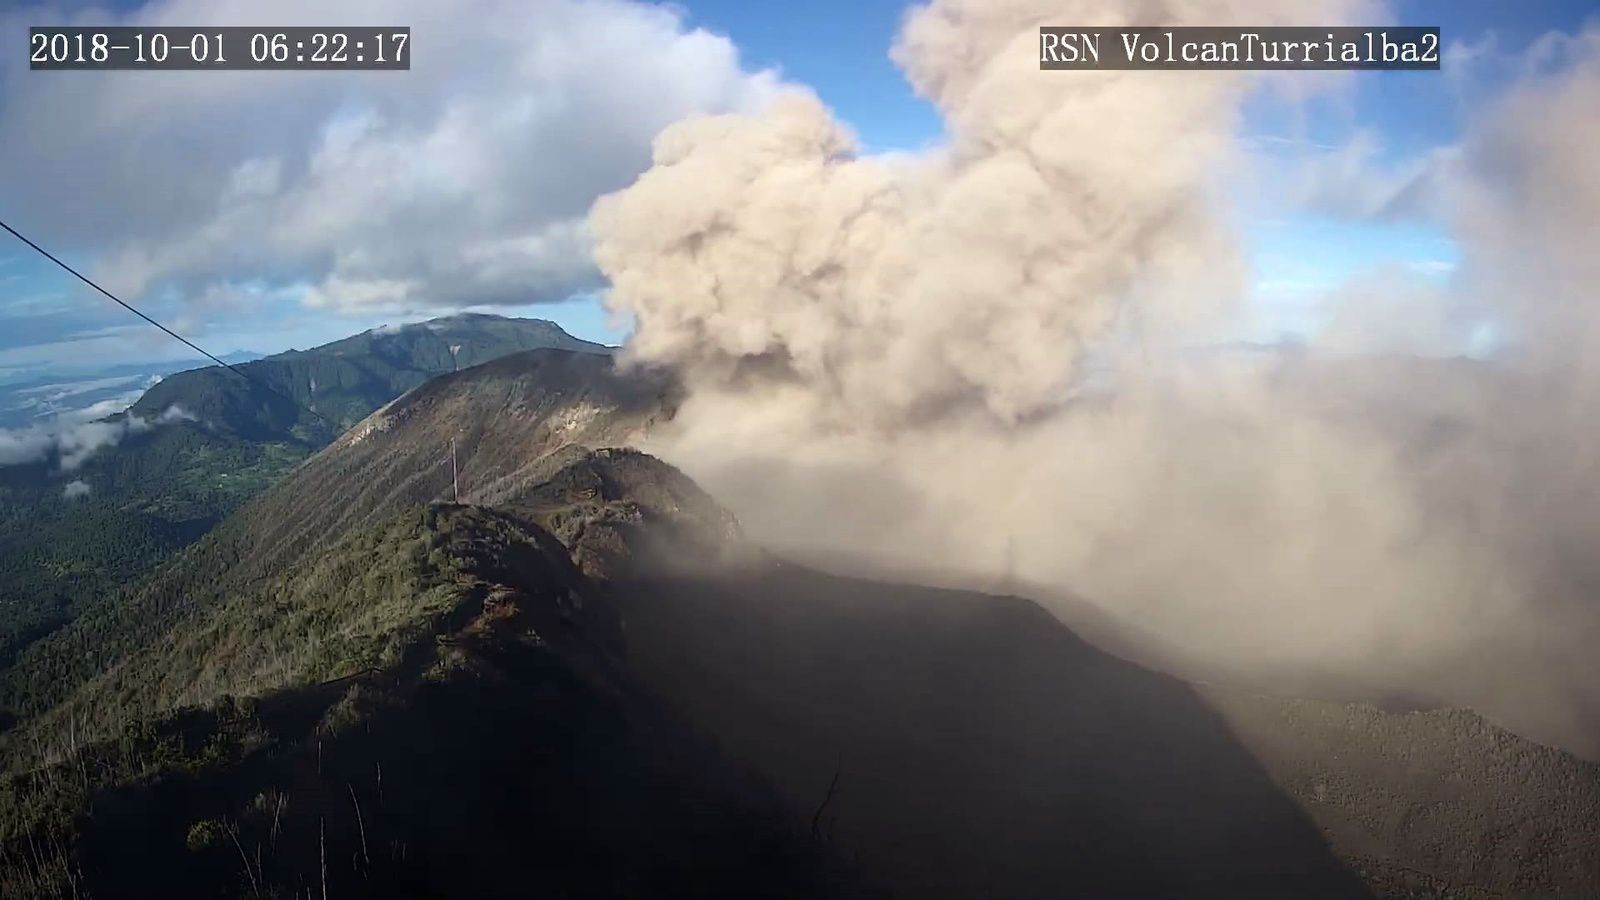 Turrialba - 01.10.2018 / 6h22 - RSN webcam